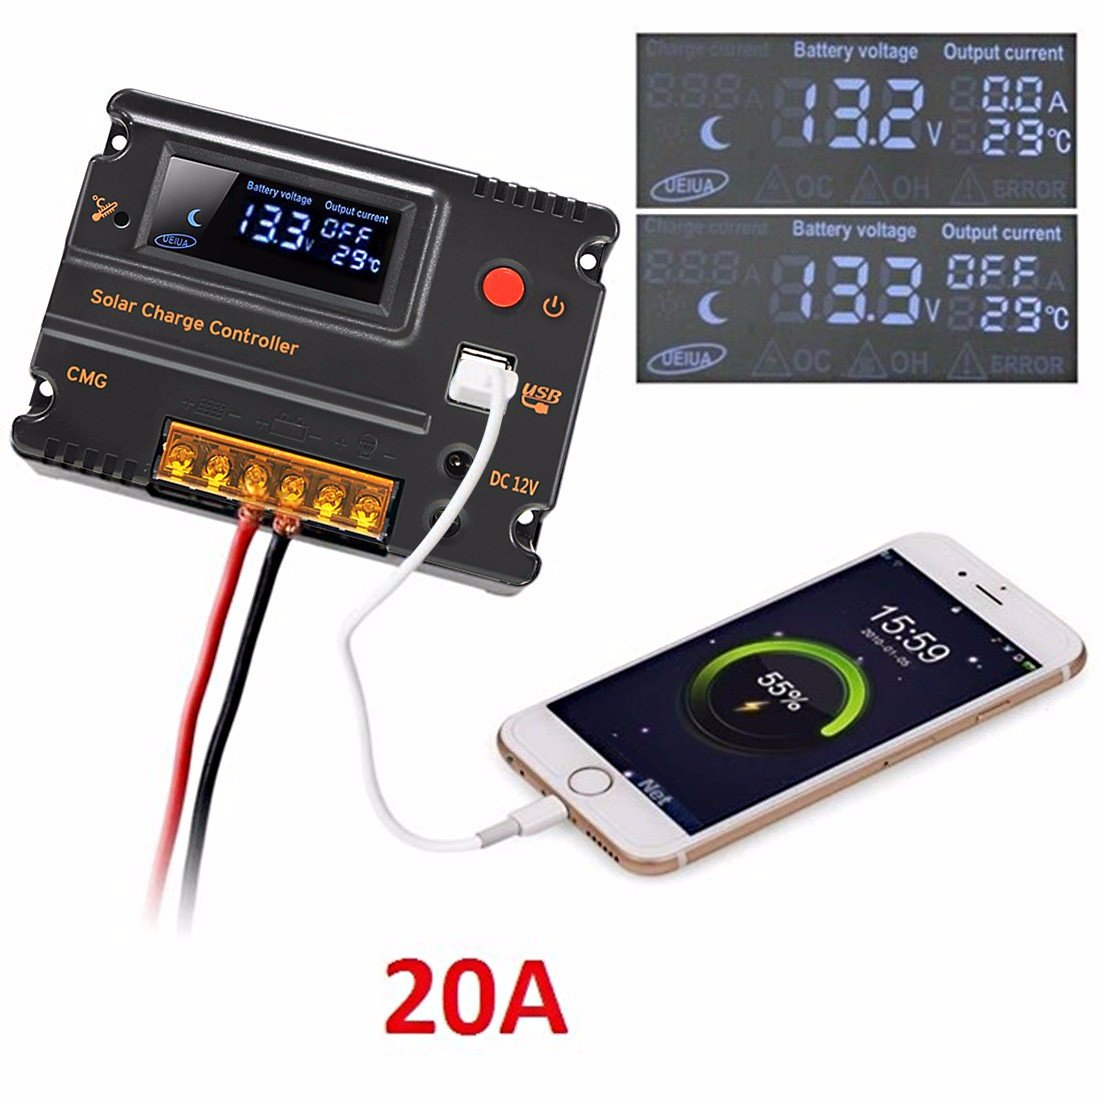 Mohoo 20a 12v 24v Solar Charge Controller Auto Switch Simple Pwm Controlled Dc To Cell Phone Charger Circuit Science Lcd Intelligent Panel Battery Regulator Overload Protection